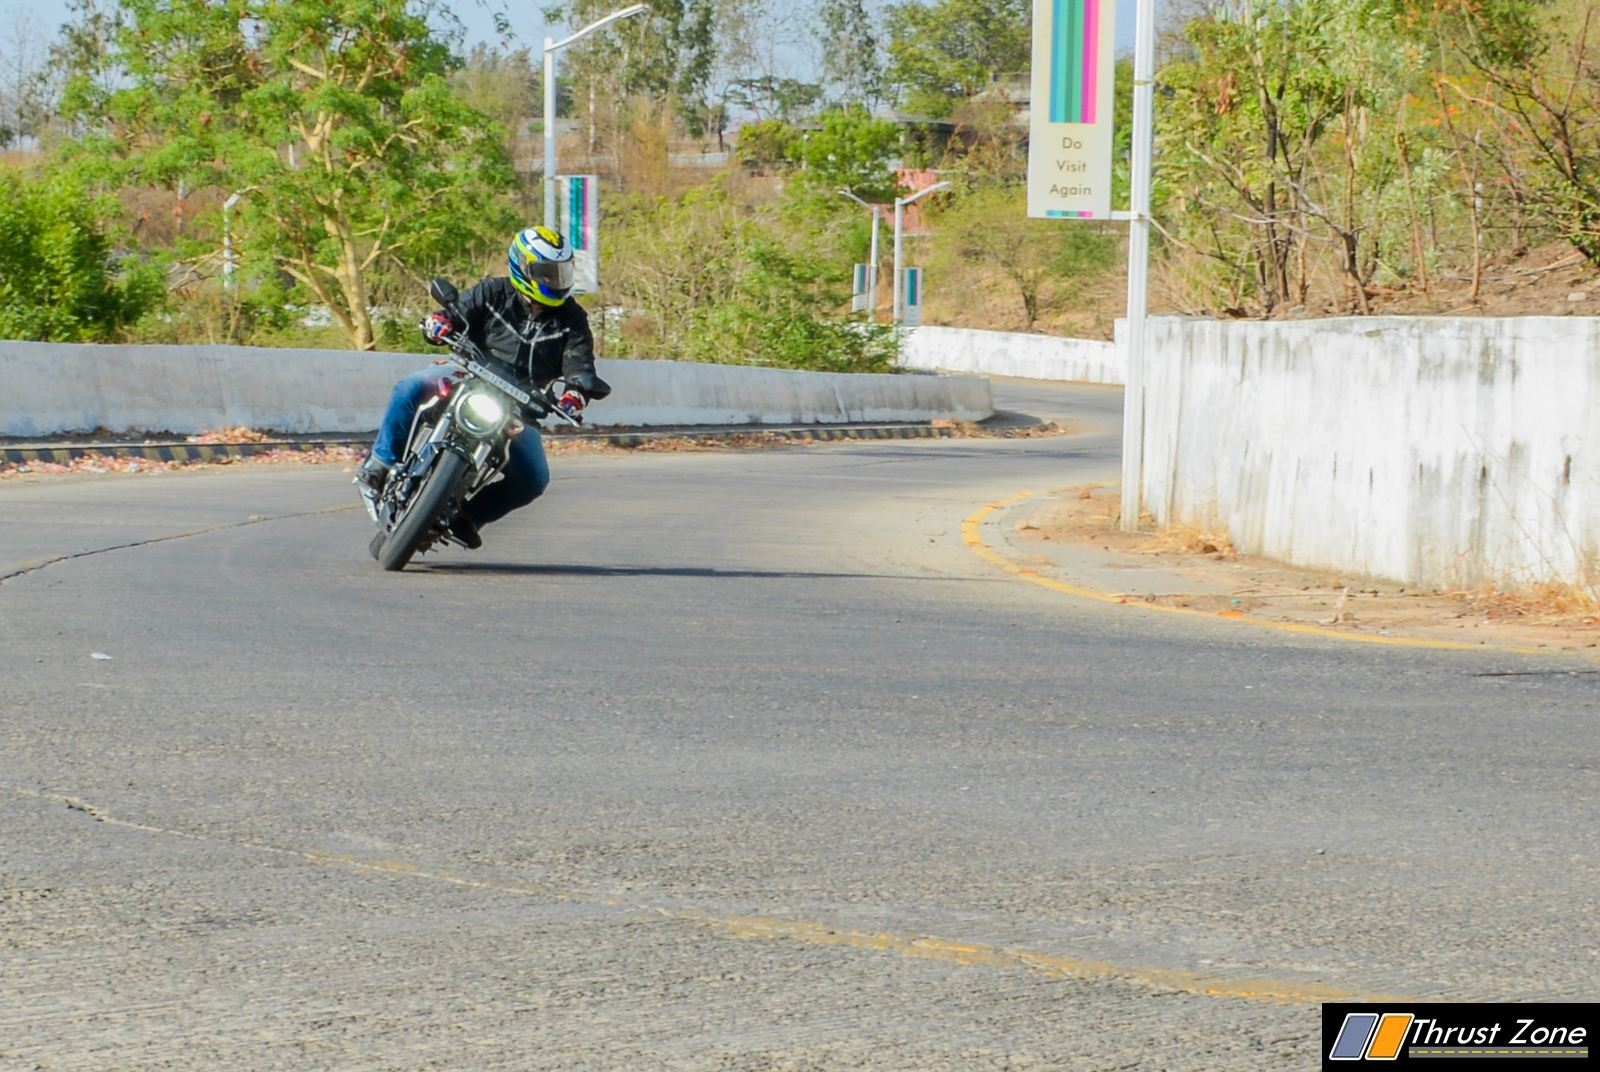 https://www.thrustzone.com/wp-content/uploads/2019/06/2019-Honda-CB300R-Review-India-5.jpg